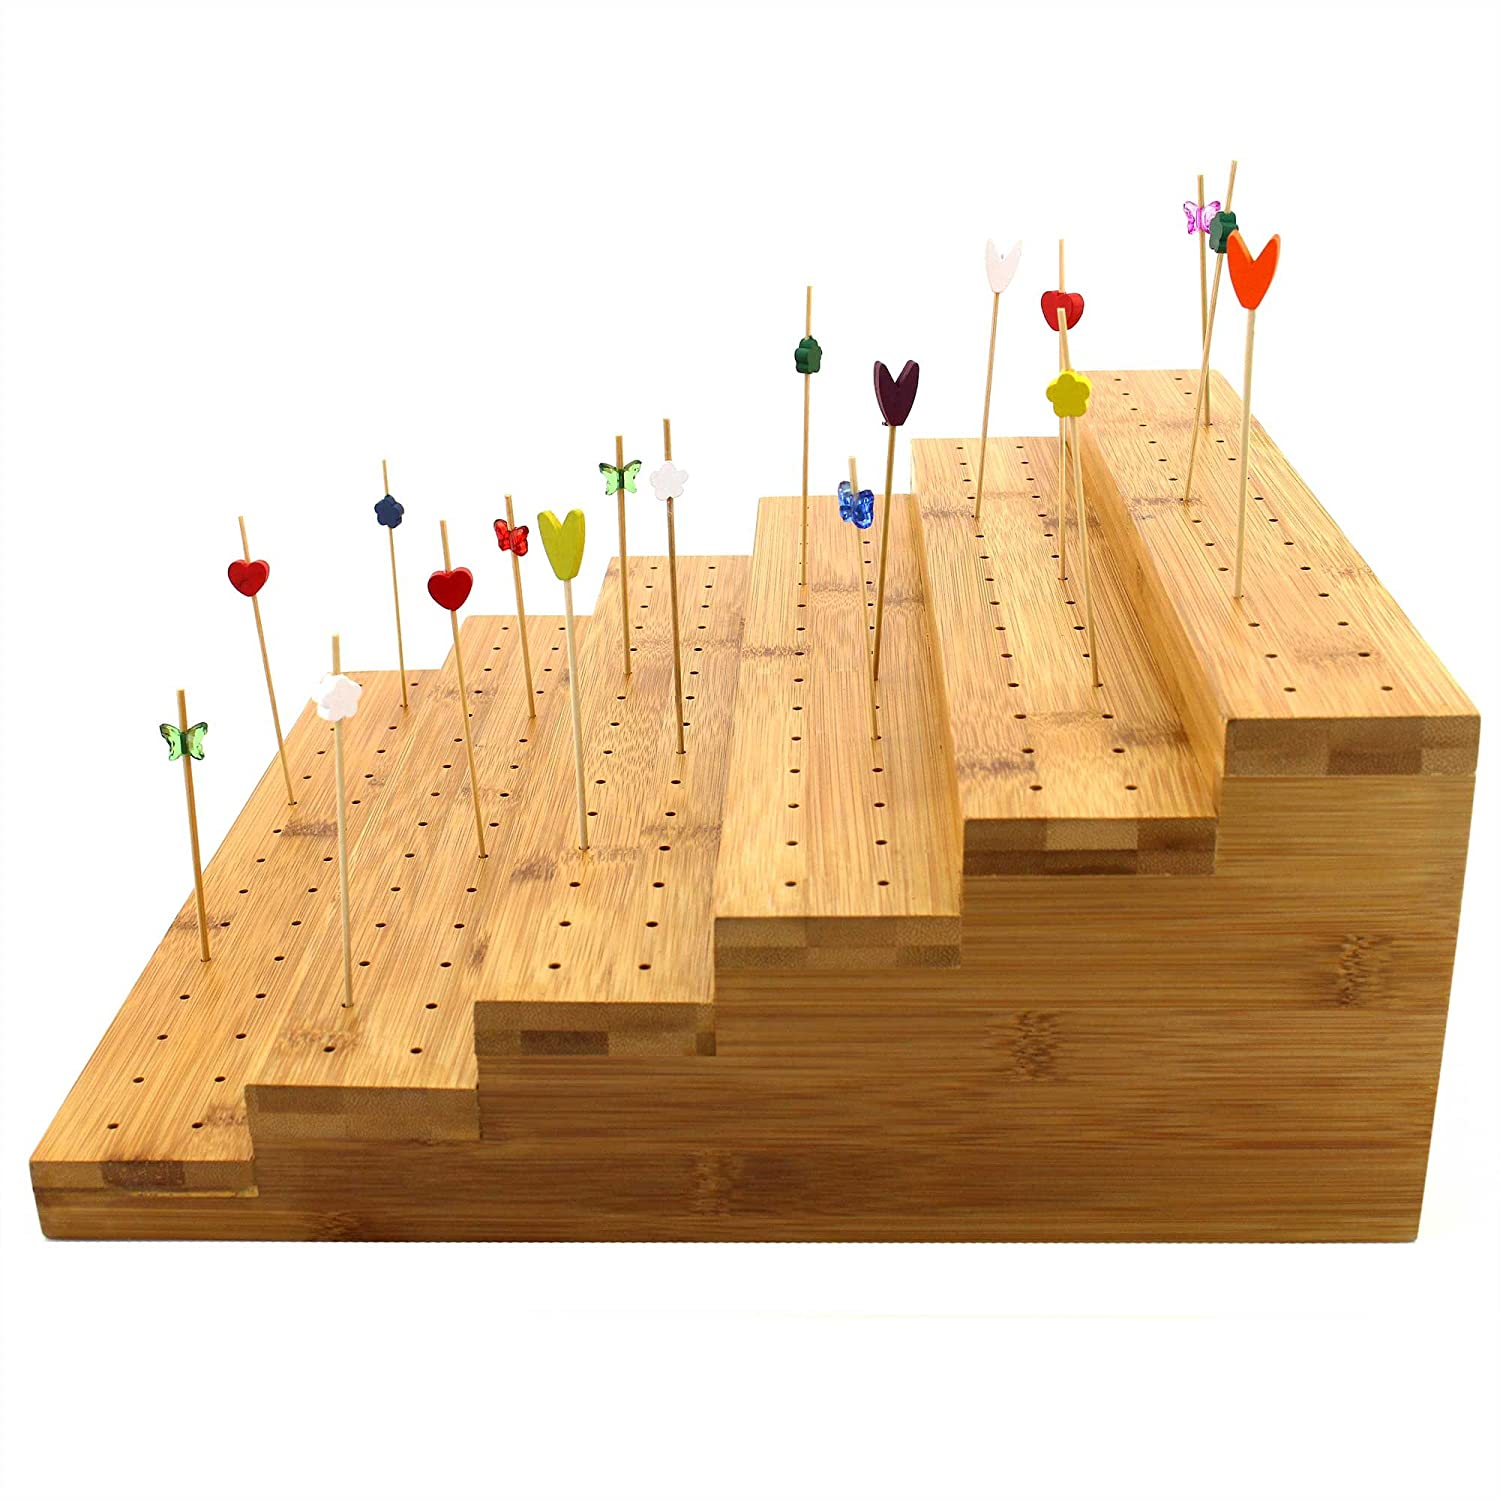 """BambooMN 5"""" Tall Bamboo Skewer Holder Food Display Step Skewers Stand w/ 180 Holes - Natural Color - 1 Piece"""